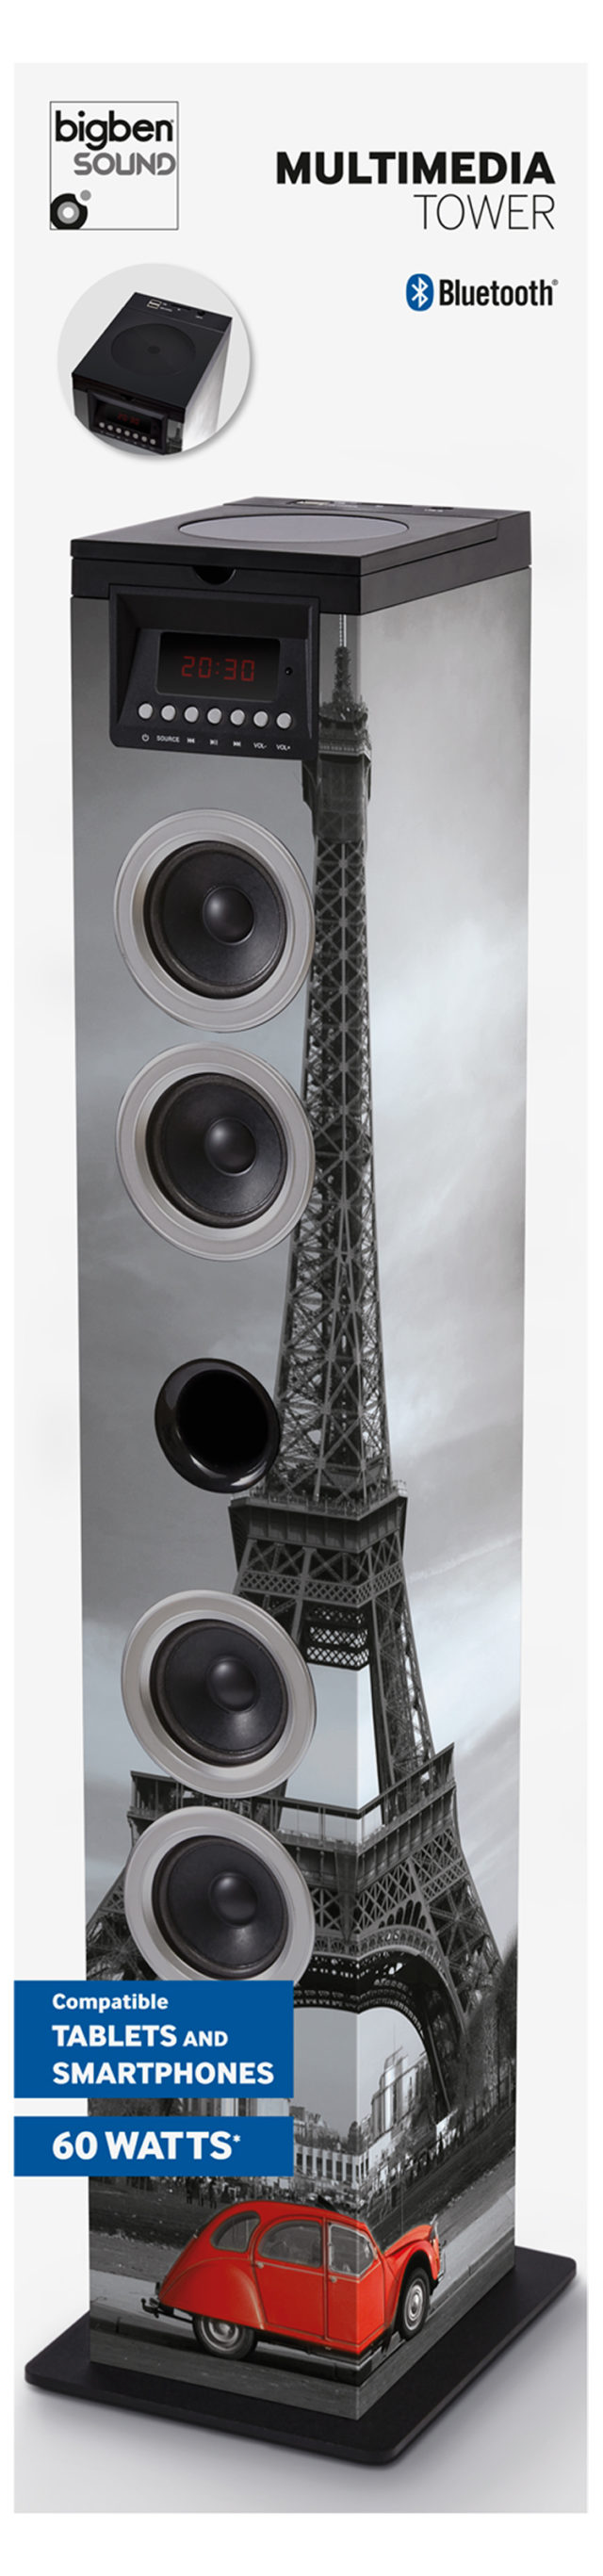 Sound Tower TW12CD – Paris - Packshot